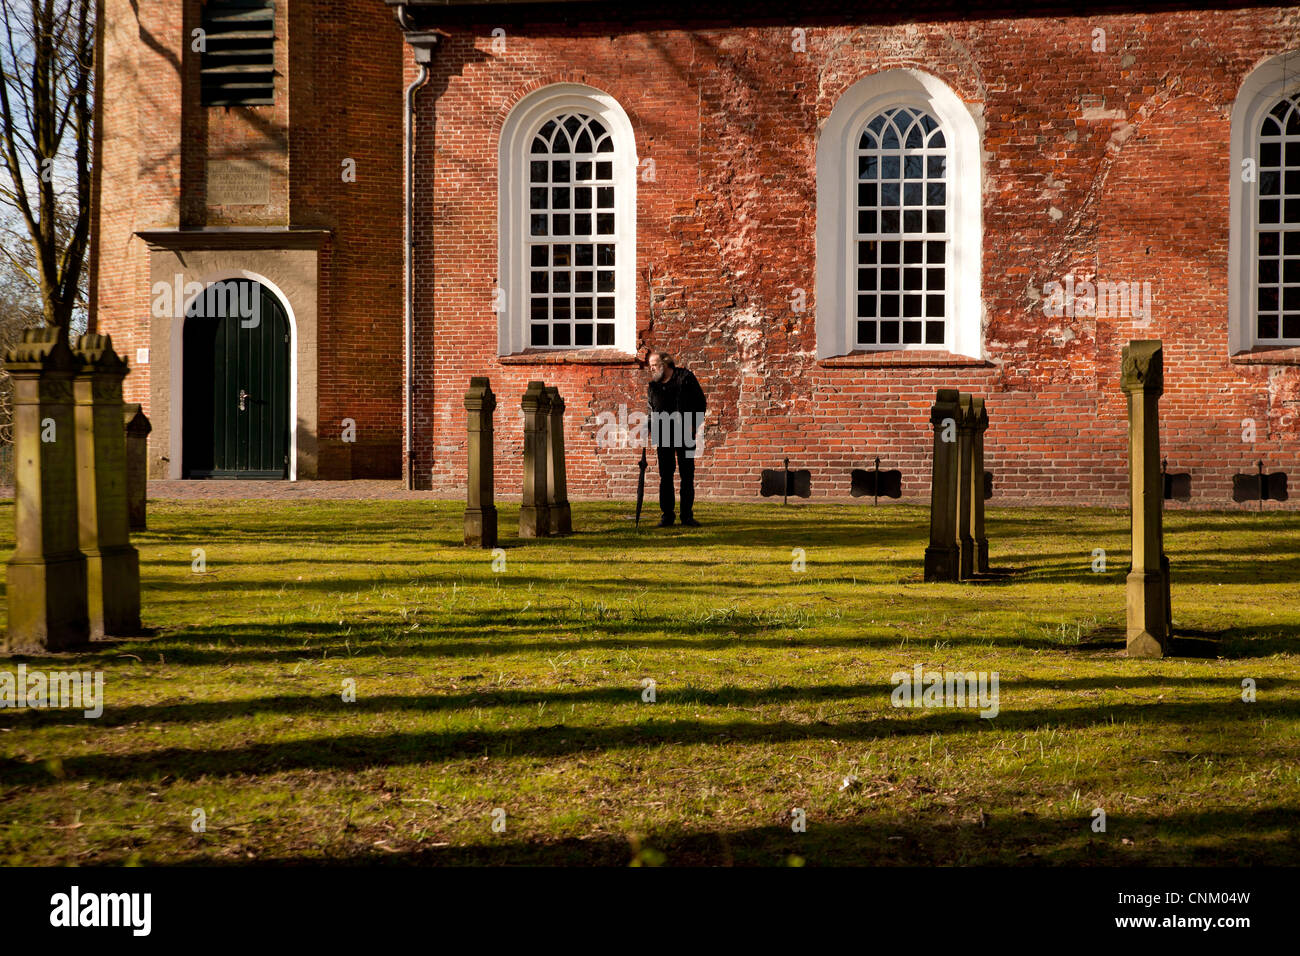 church Friedenskirche and cemetery in Leer , East Frisia, Lower Saxony, Germany Stock Photo